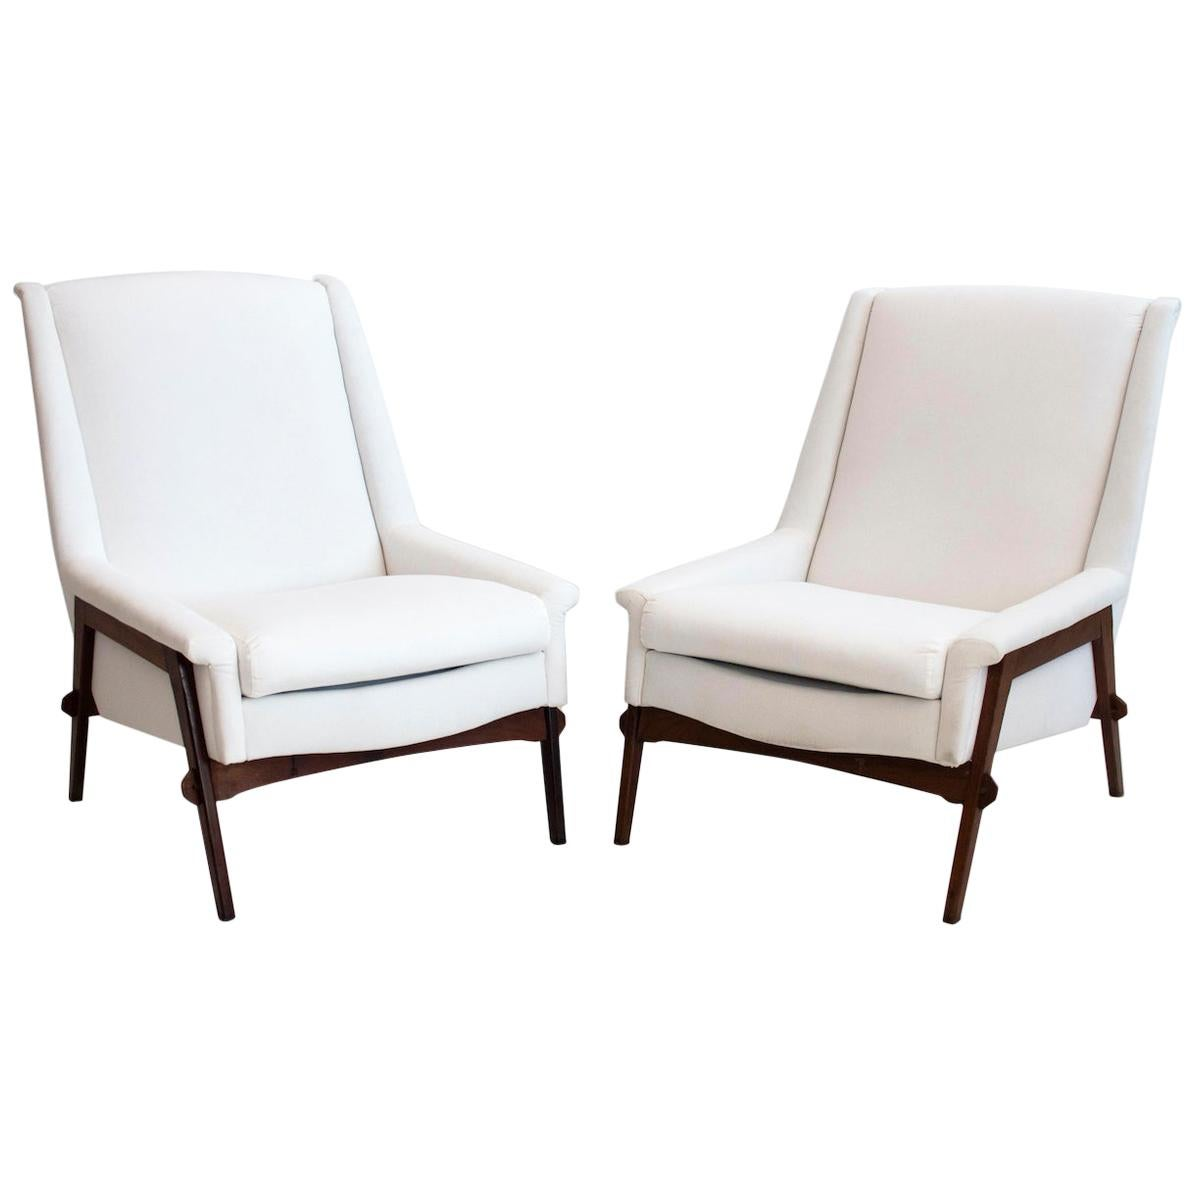 Pair of White Armchairs with Stained Oak Frame